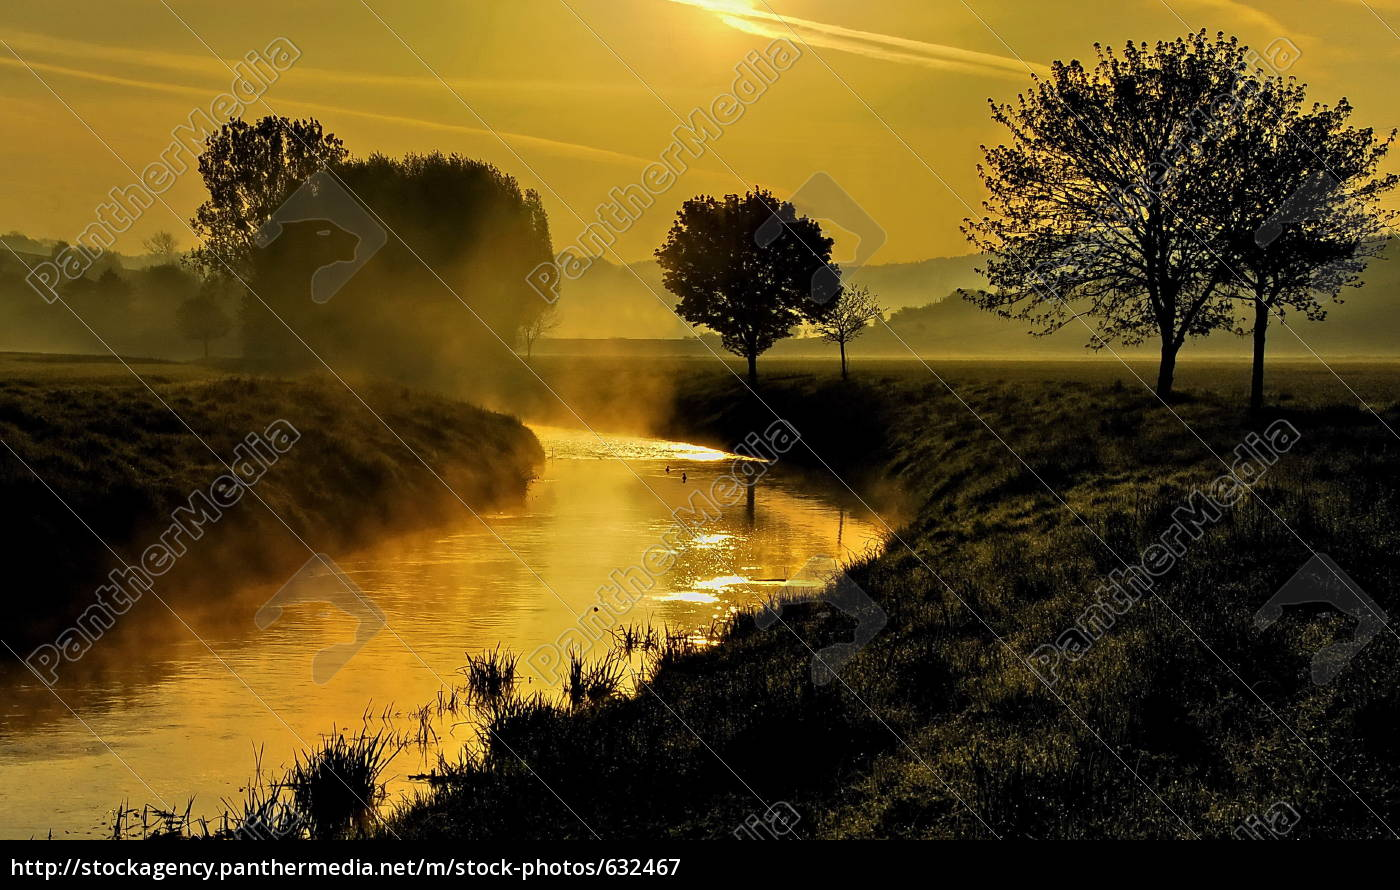 gold, river - 632467